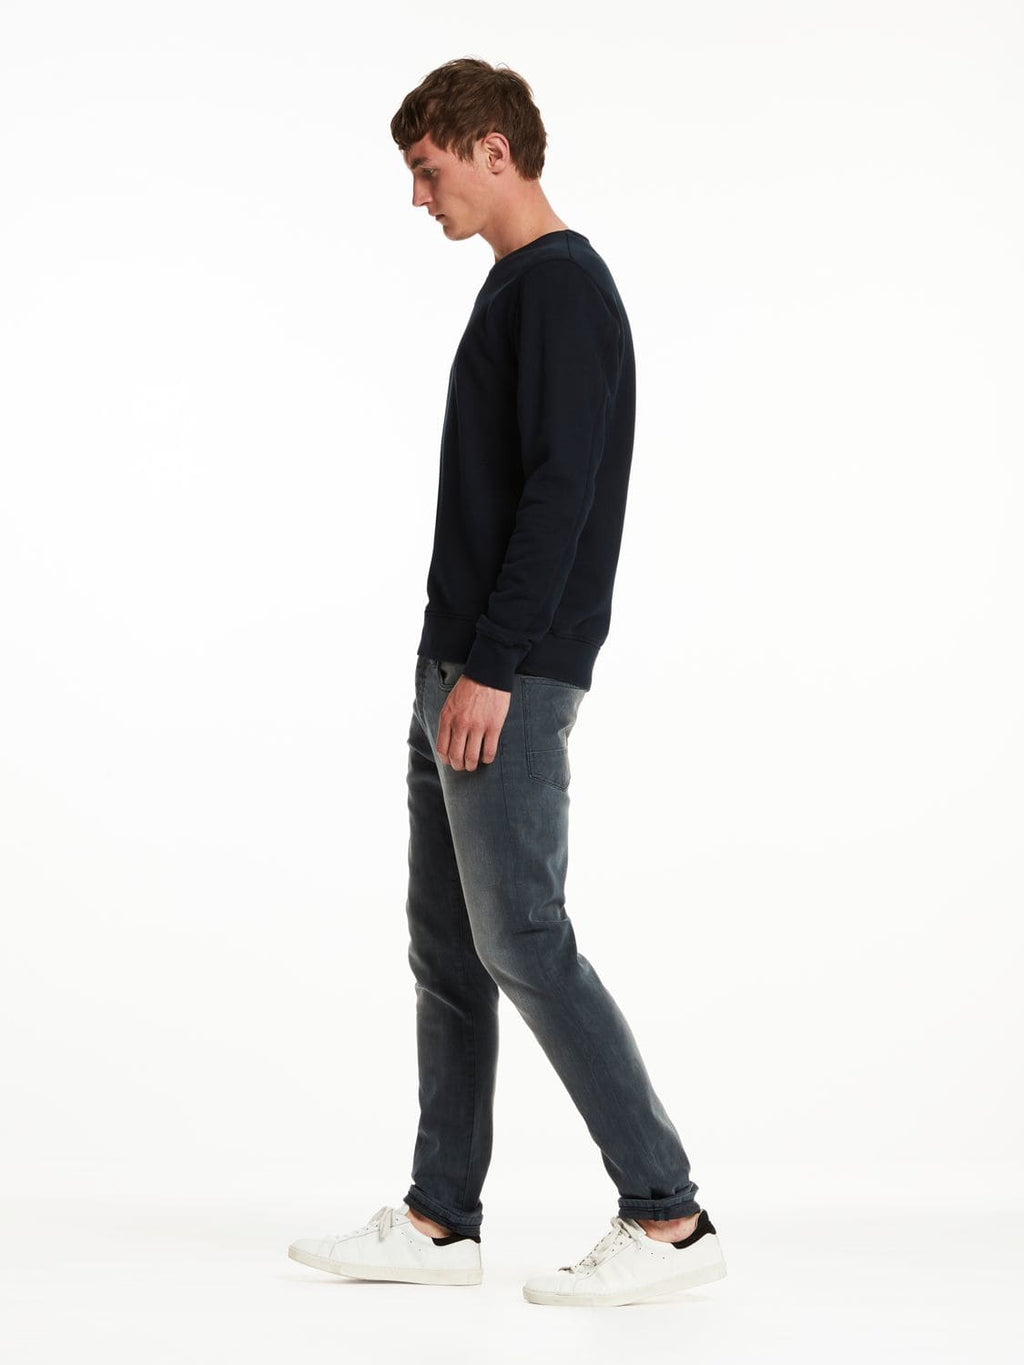 Scotch & Soda Ralston Jeans - Concrete Bleach